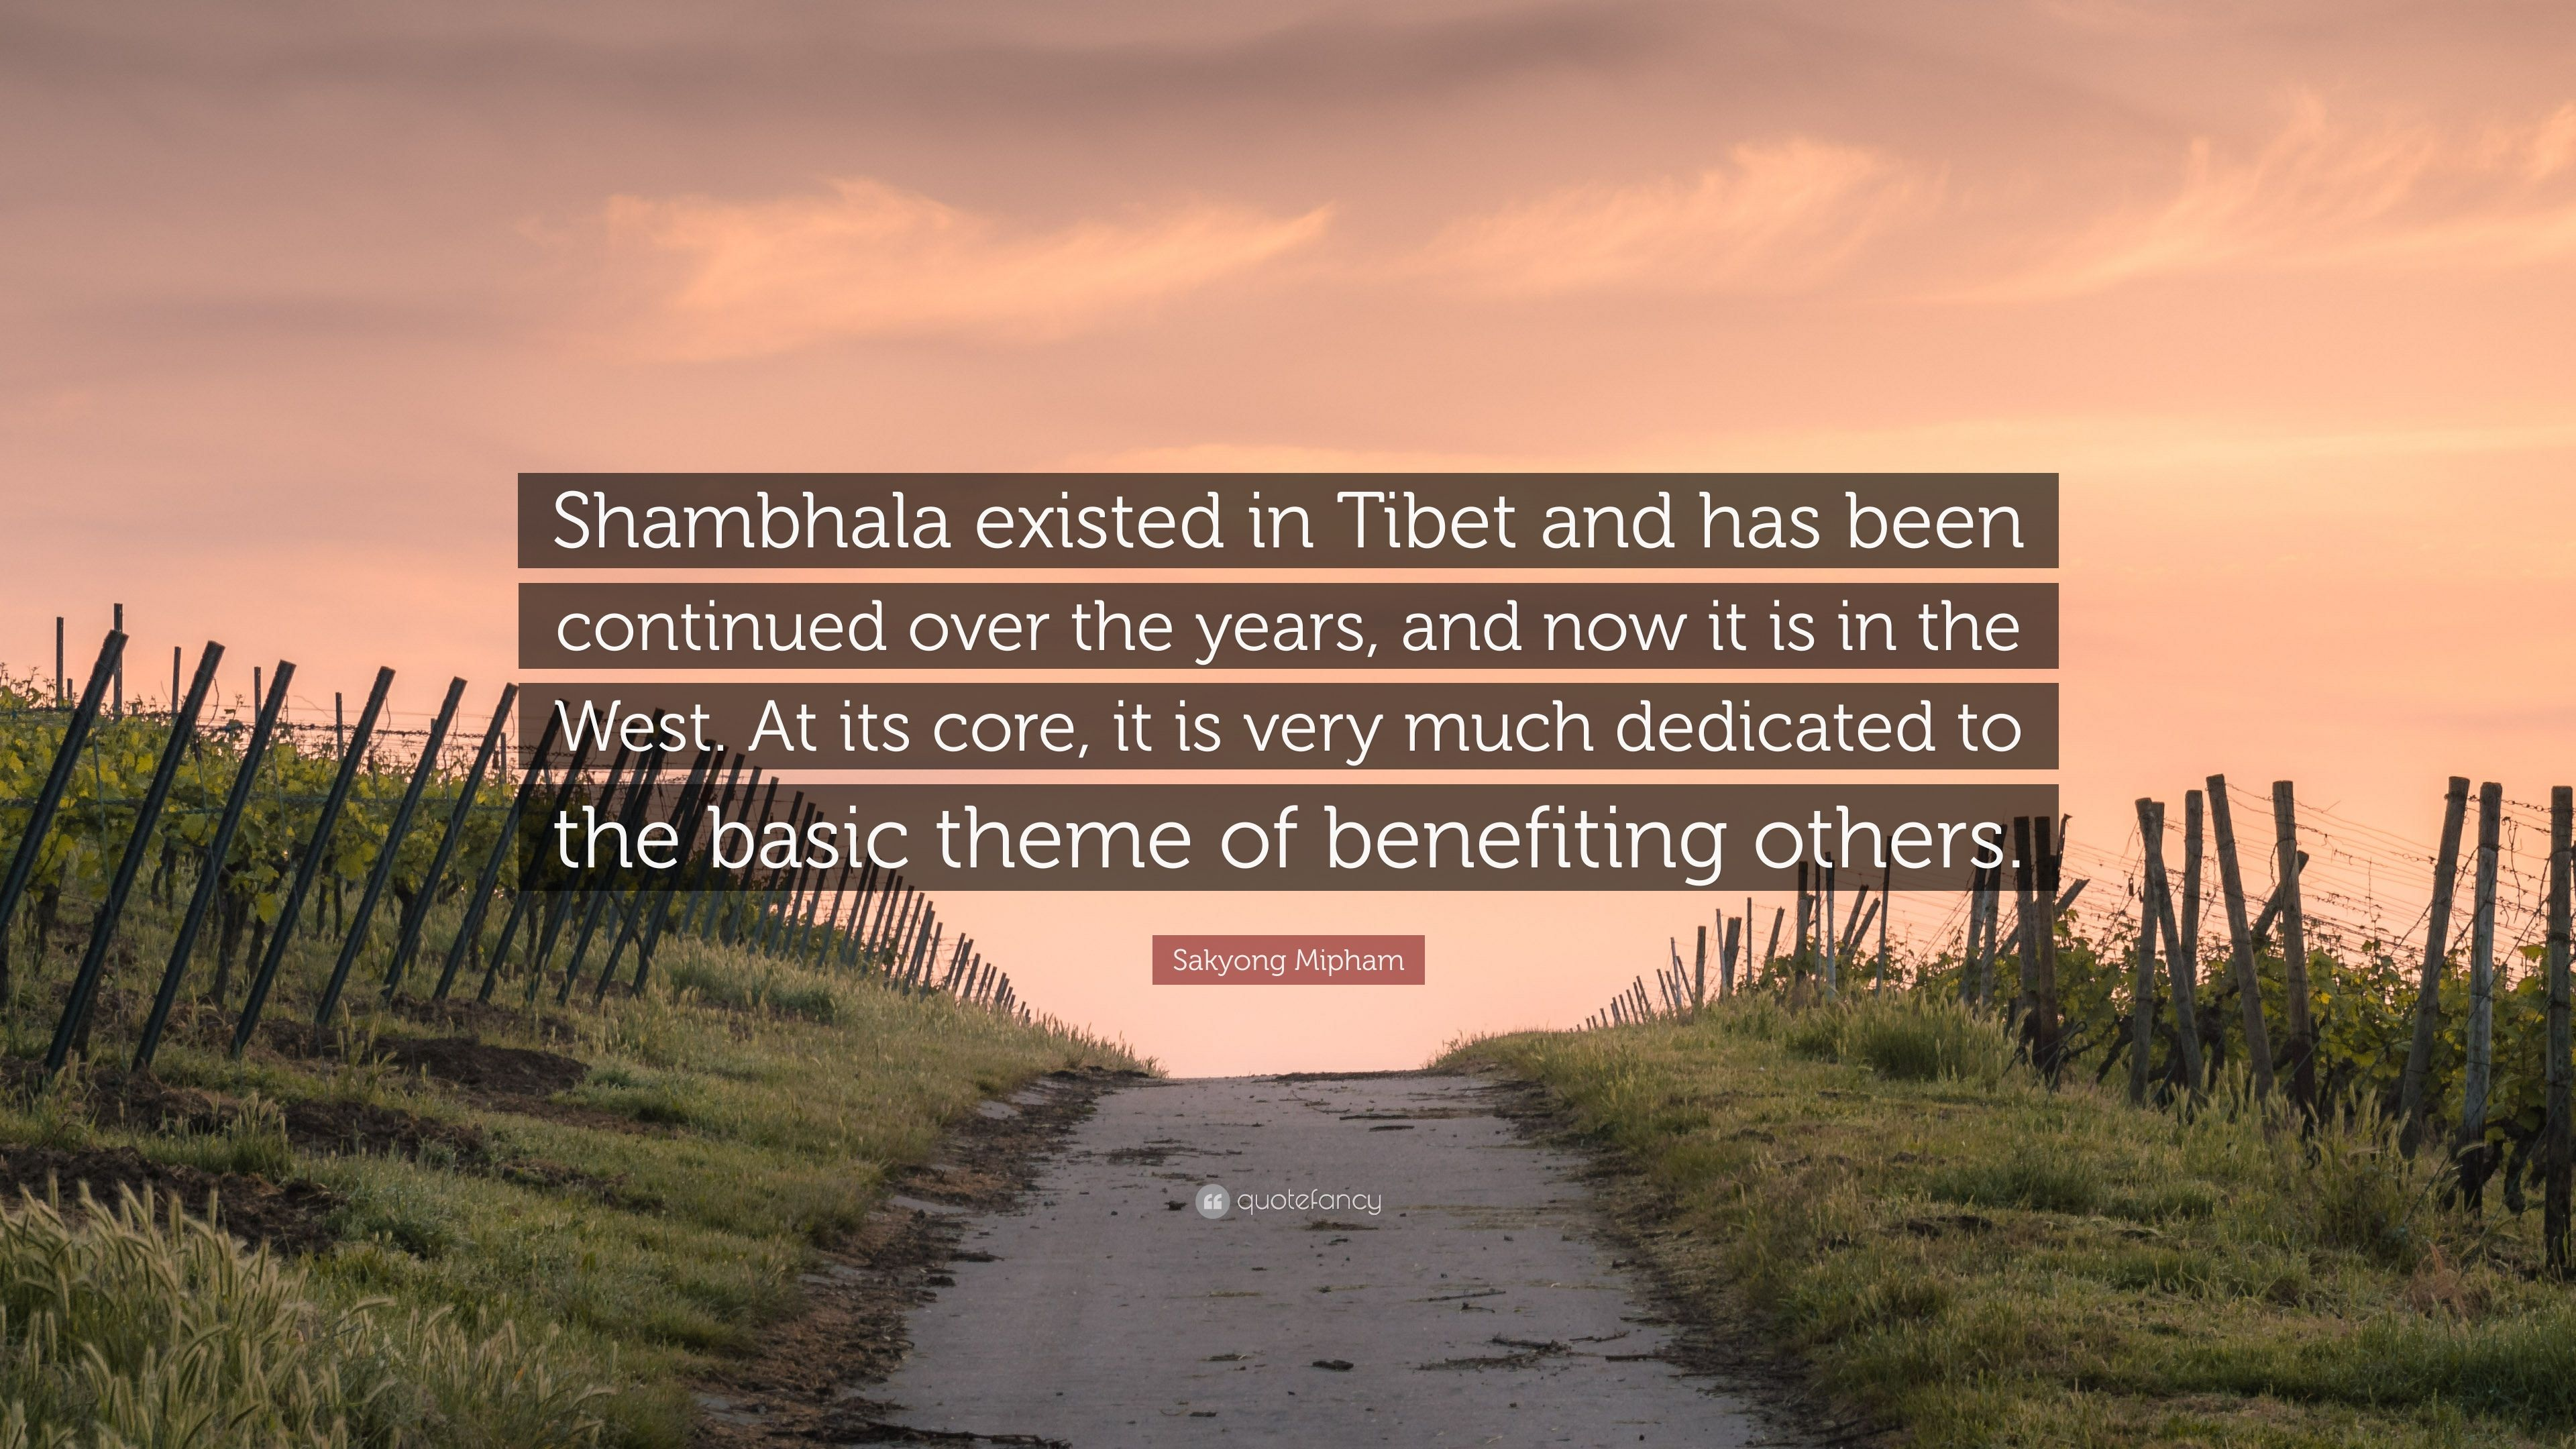 Sakyong mipham quote shambhala existed in tibet and has been continued over the years